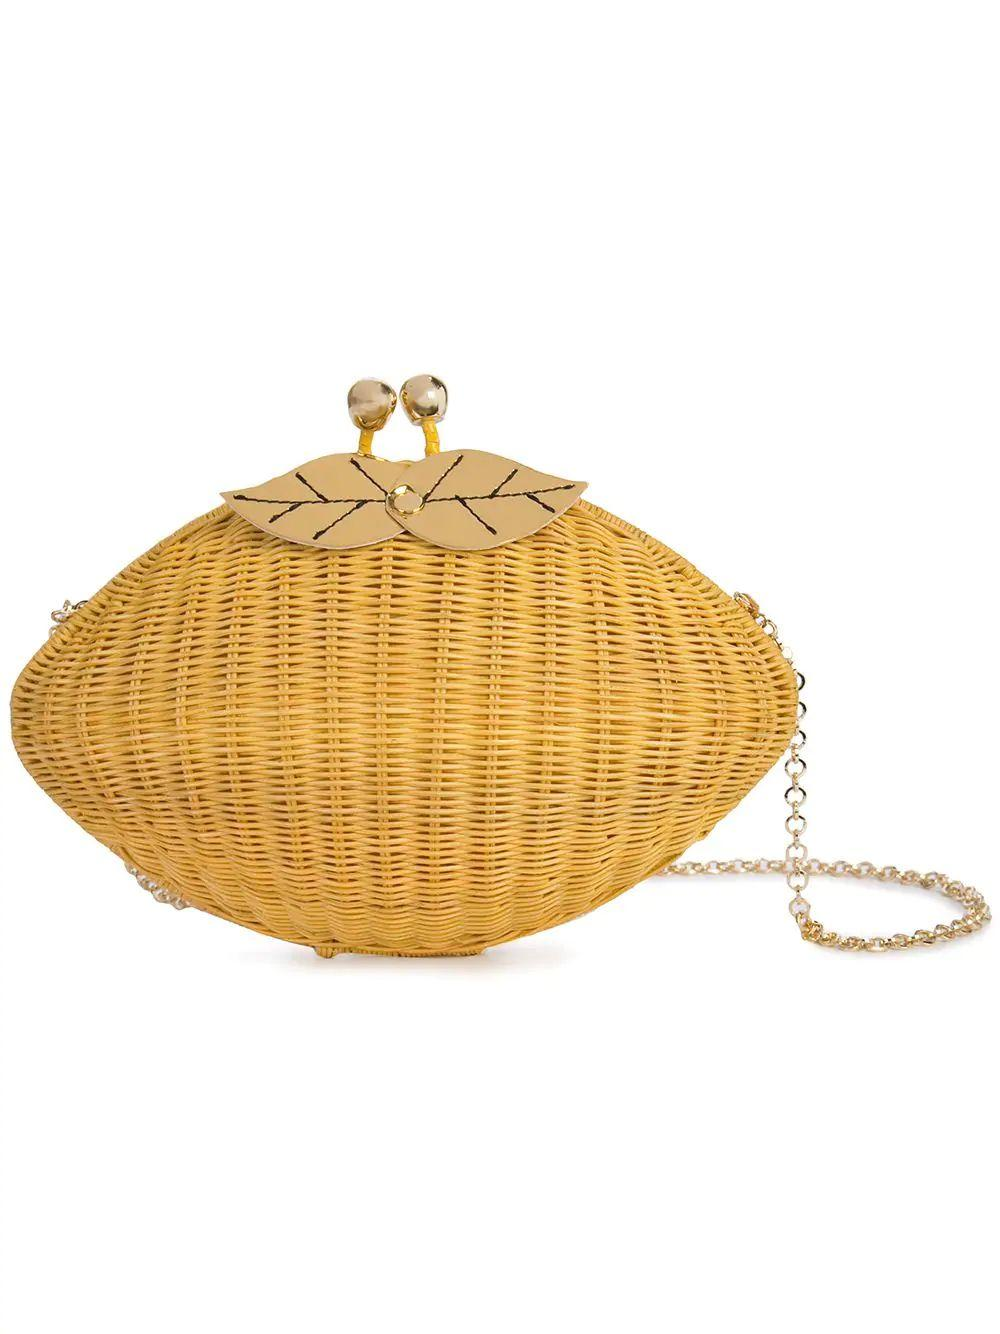 Sicilian Lemon Wicker Clutch